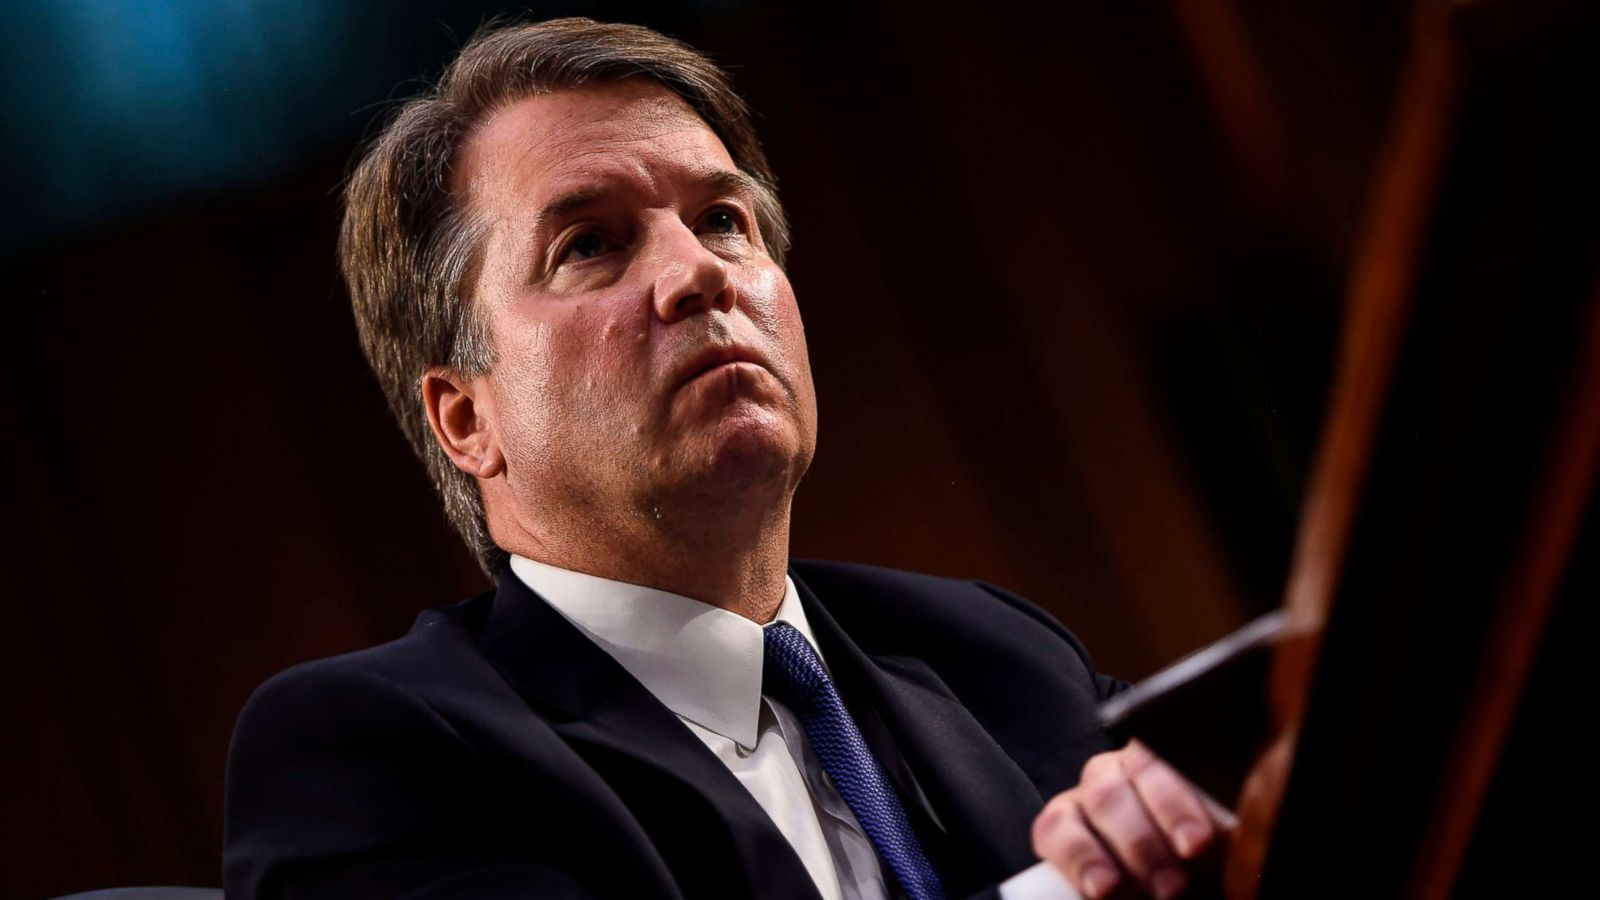 abcnews.go.com - Bill Hutchinson and Meridith McGraw - Kavanaugh accuser, Senate panel agree to more details: Thursday hearing will be open